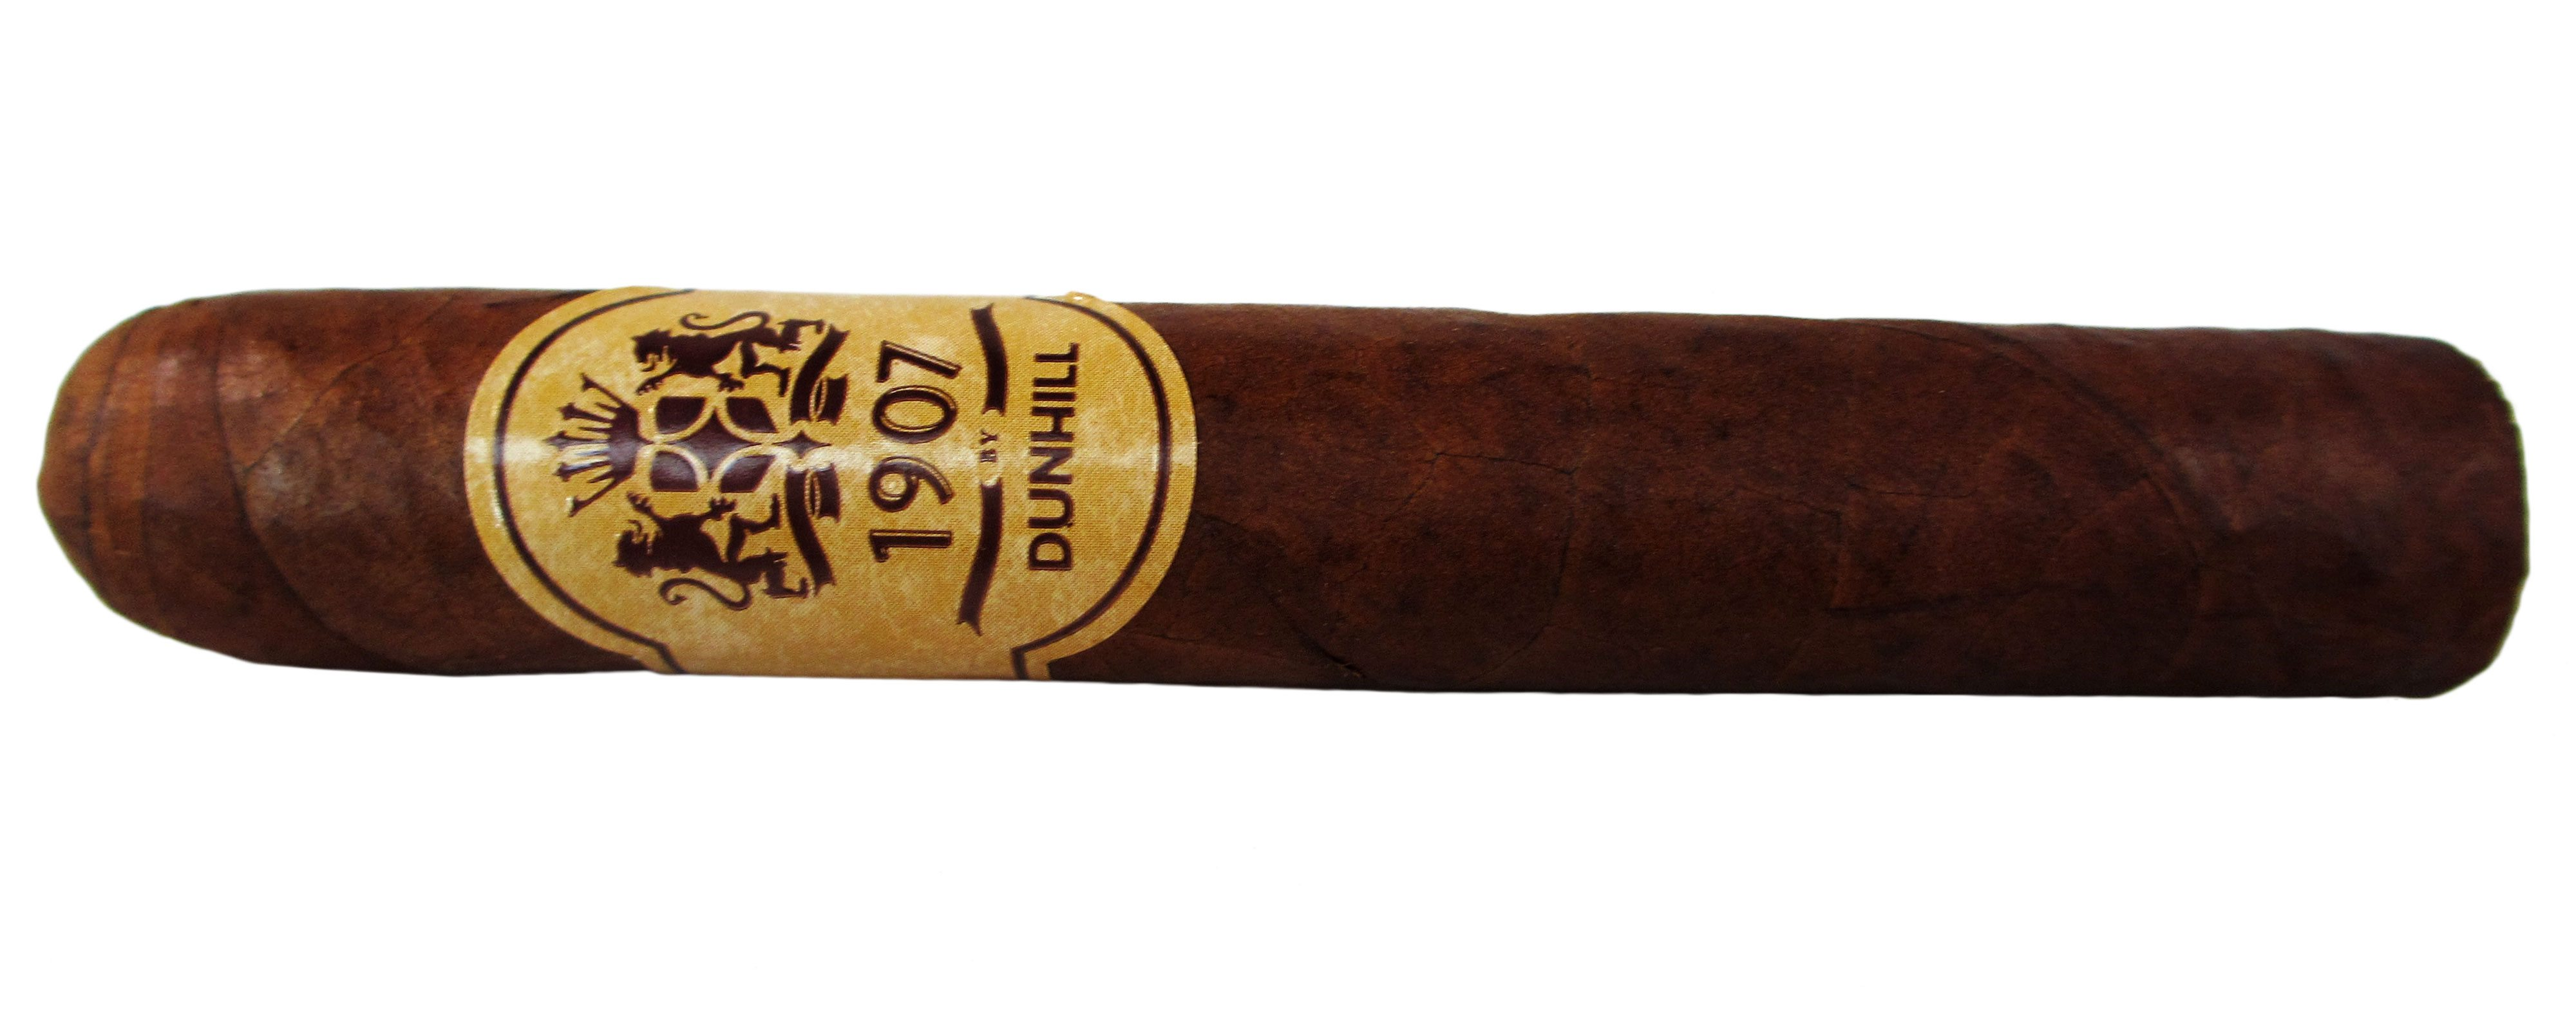 Boretti Robusto Review Robusto Related Keywords Suggestions Robusto Long Tail Keywords